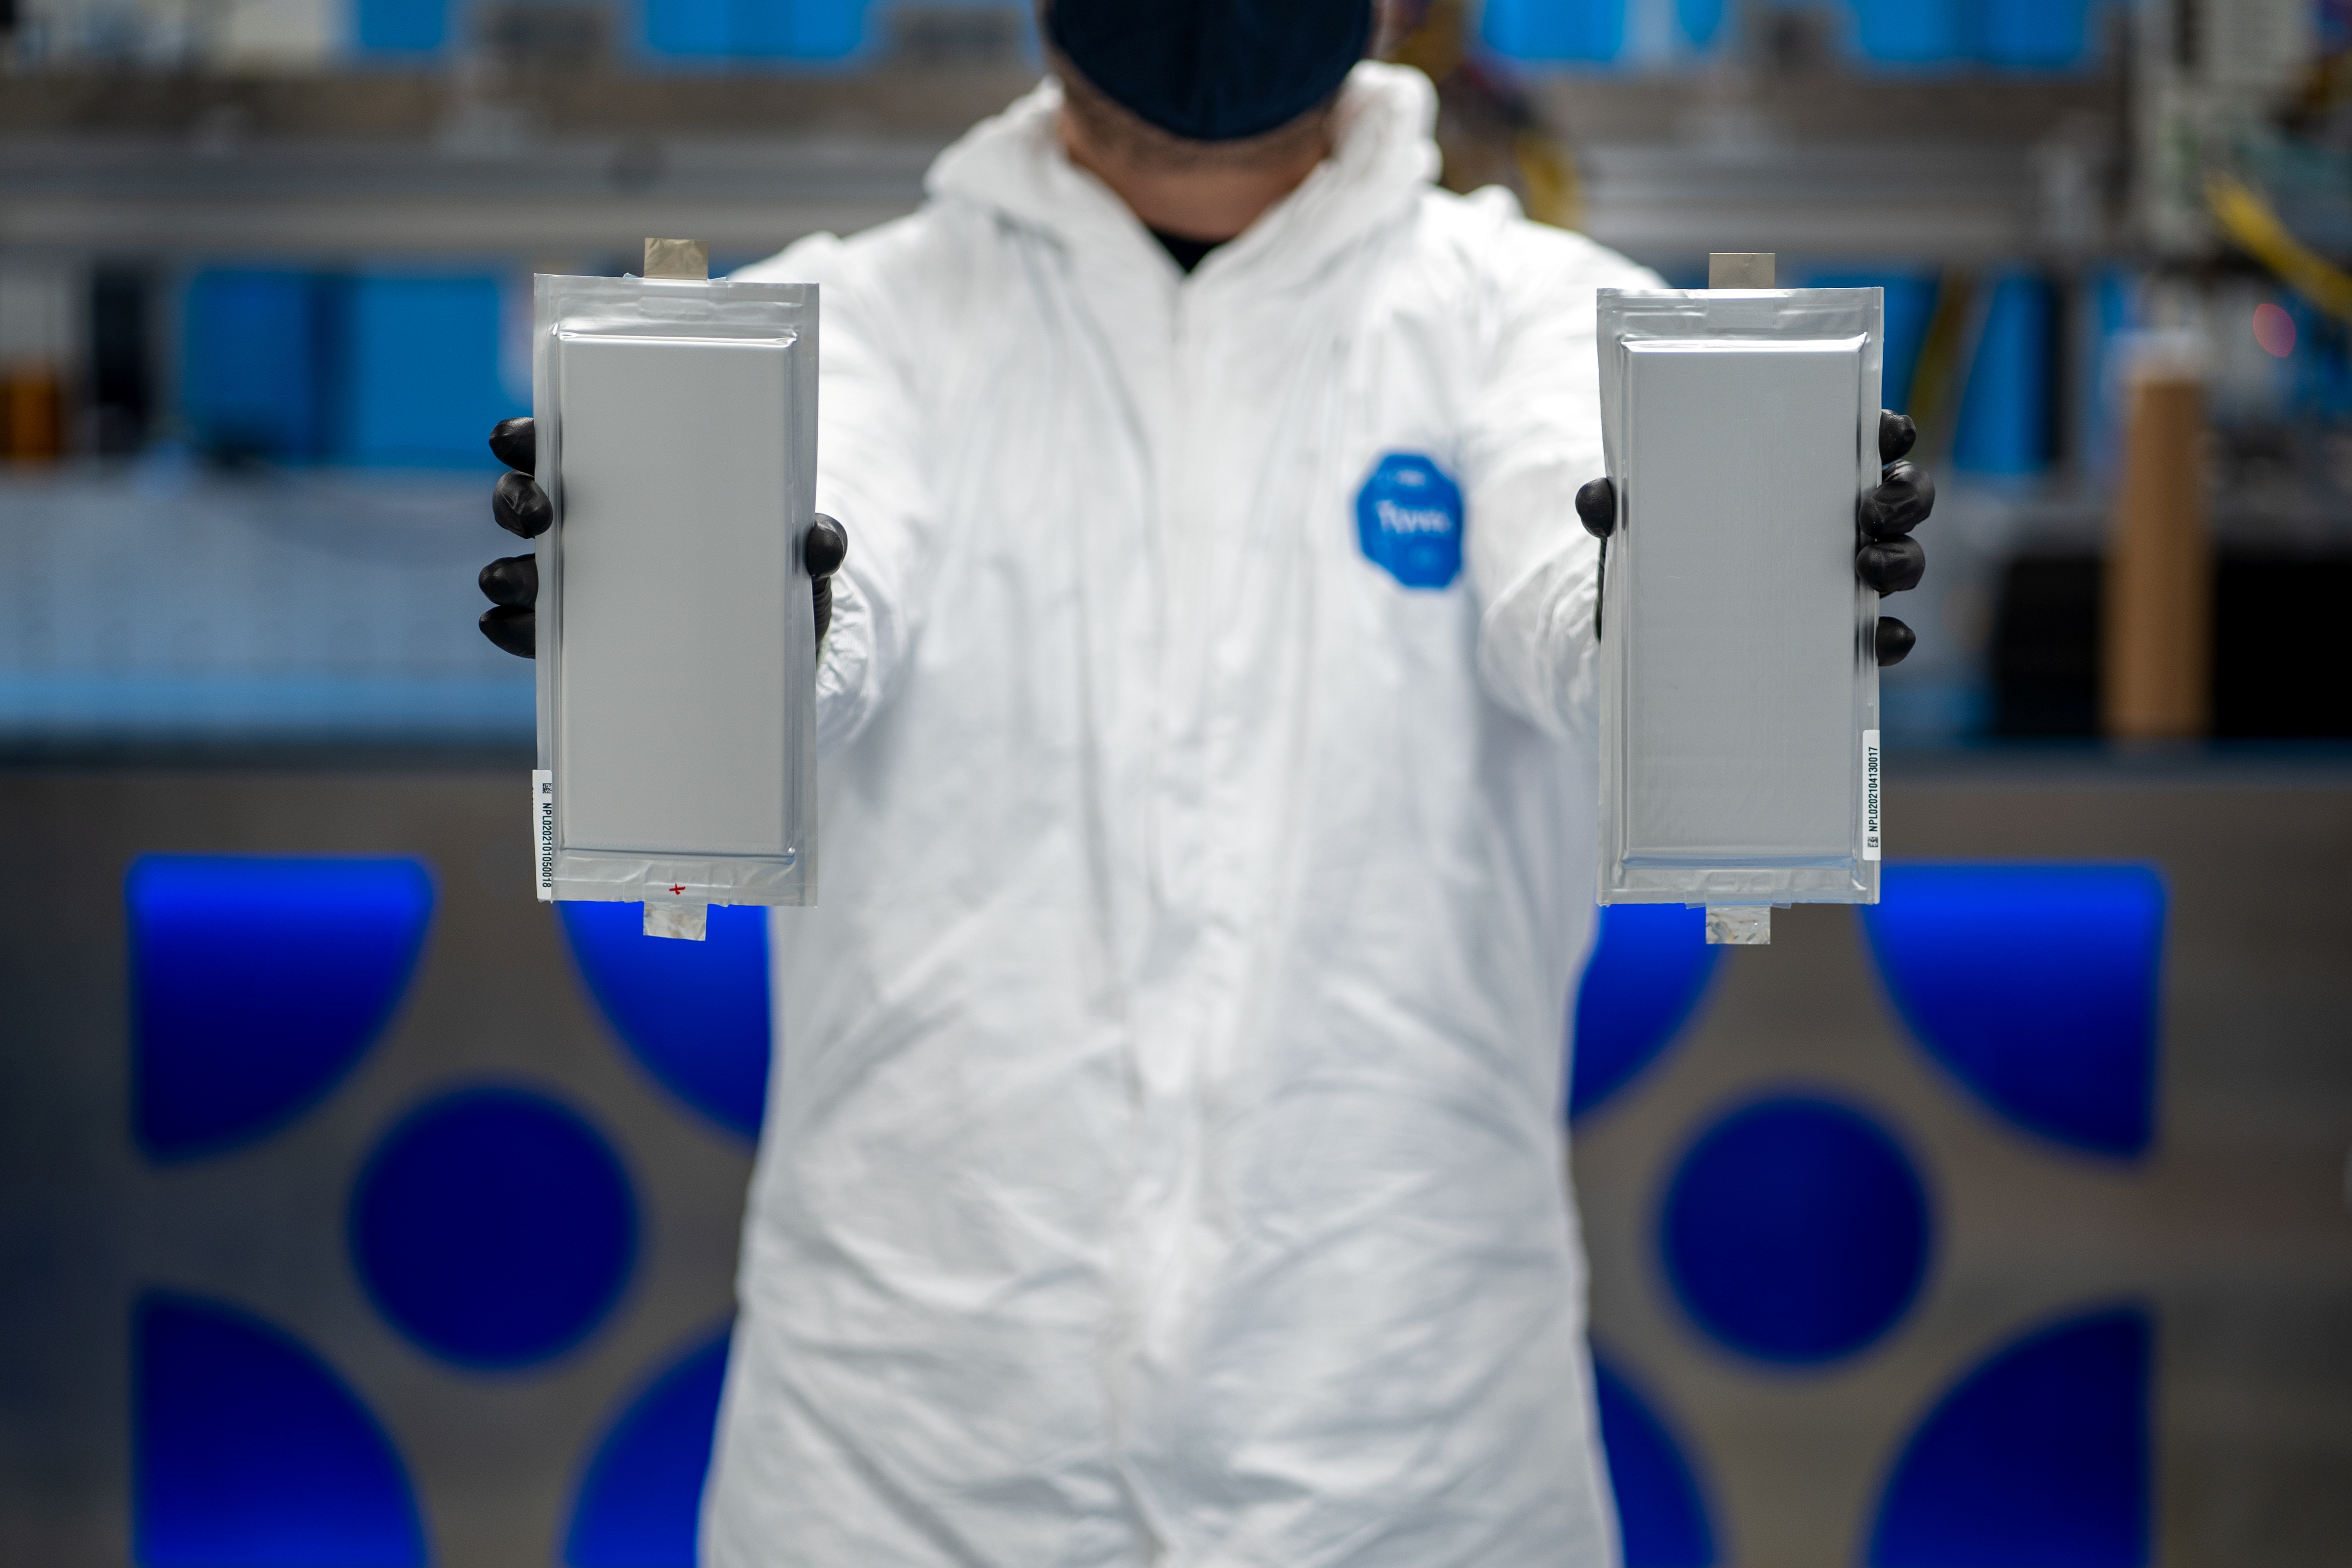 A Solid Power manufacturing engineer holds two 20 ampere hour (Ah) all solid-state battery cells for the BMW Group and Ford Motor Company, at Solid Power's pilot production line in Louisville, Colorado, U.S. April 23, 2021. Picture taken April 23, 2021. Will McKenna/Solid Power/Handout via REUTERS